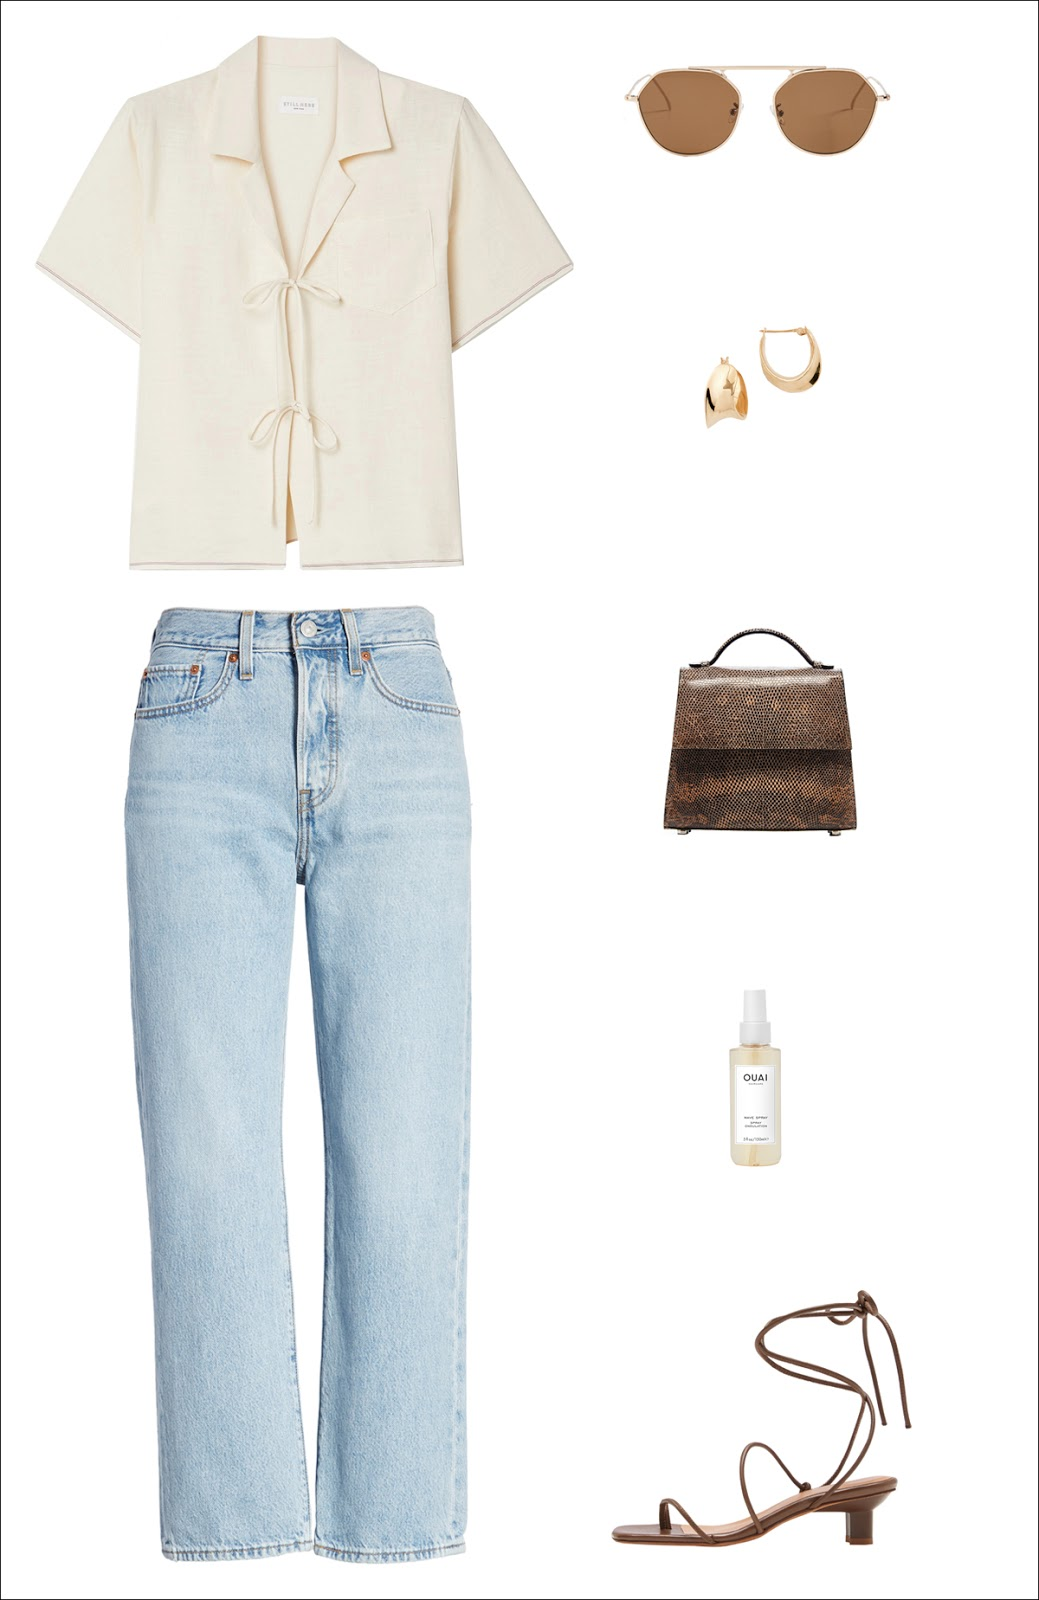 Casual-Chic Denim Outfit for Summer and Fall — standout shirt, metal-rim sunglasses, chunky hoop earrings, a cool mini bag, classic straight-leg jeans, and ankle-wrap sandals